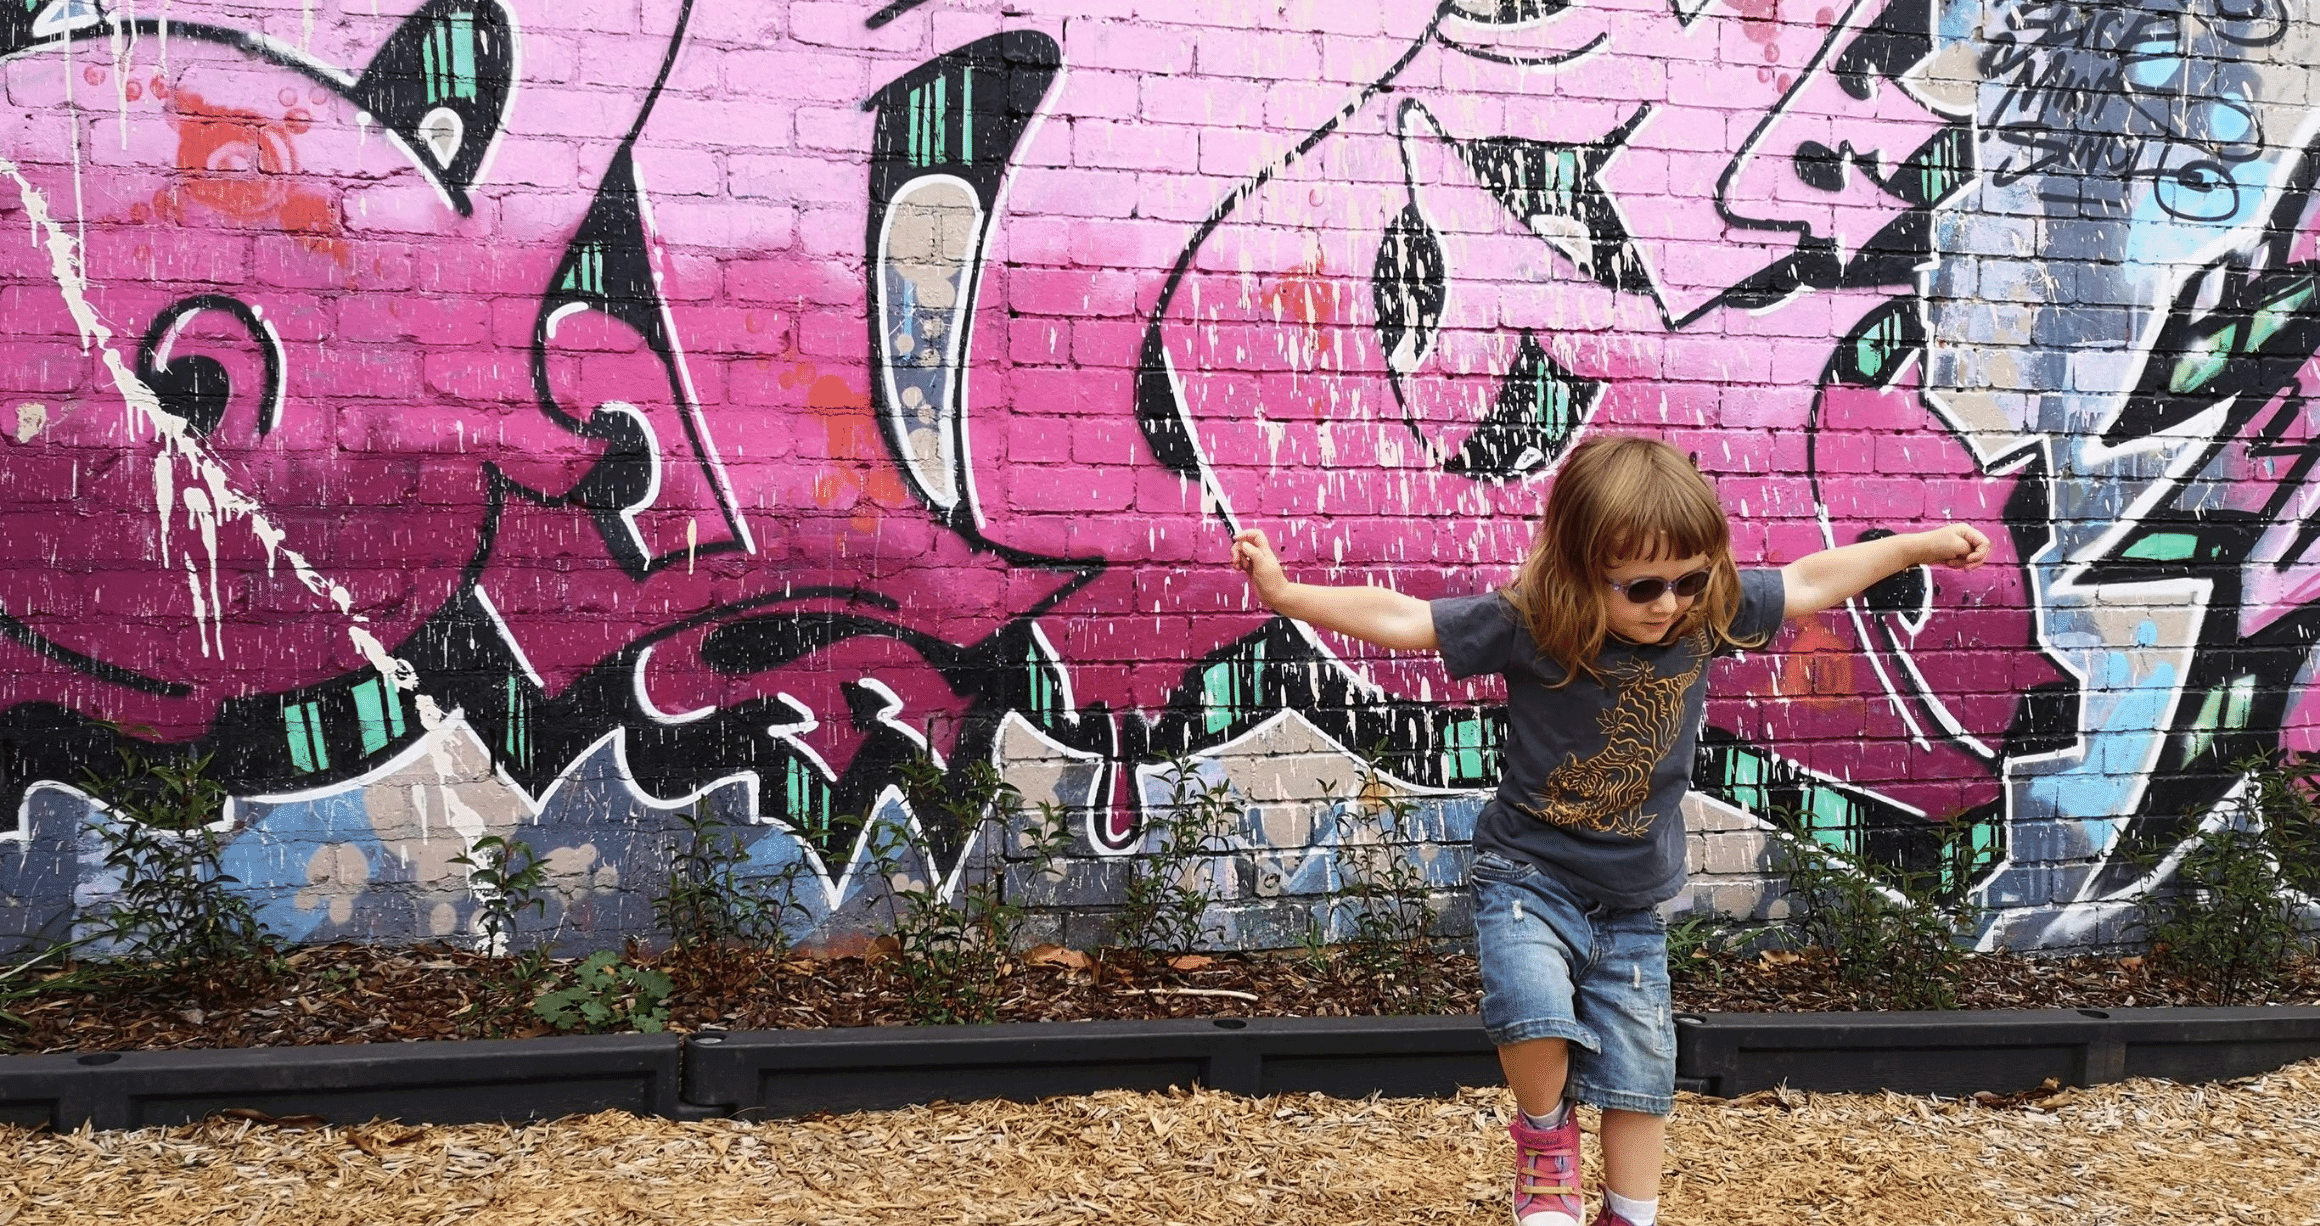 Young girl wearing glasses, playing happily in front of brick graffiti wall, very colourful